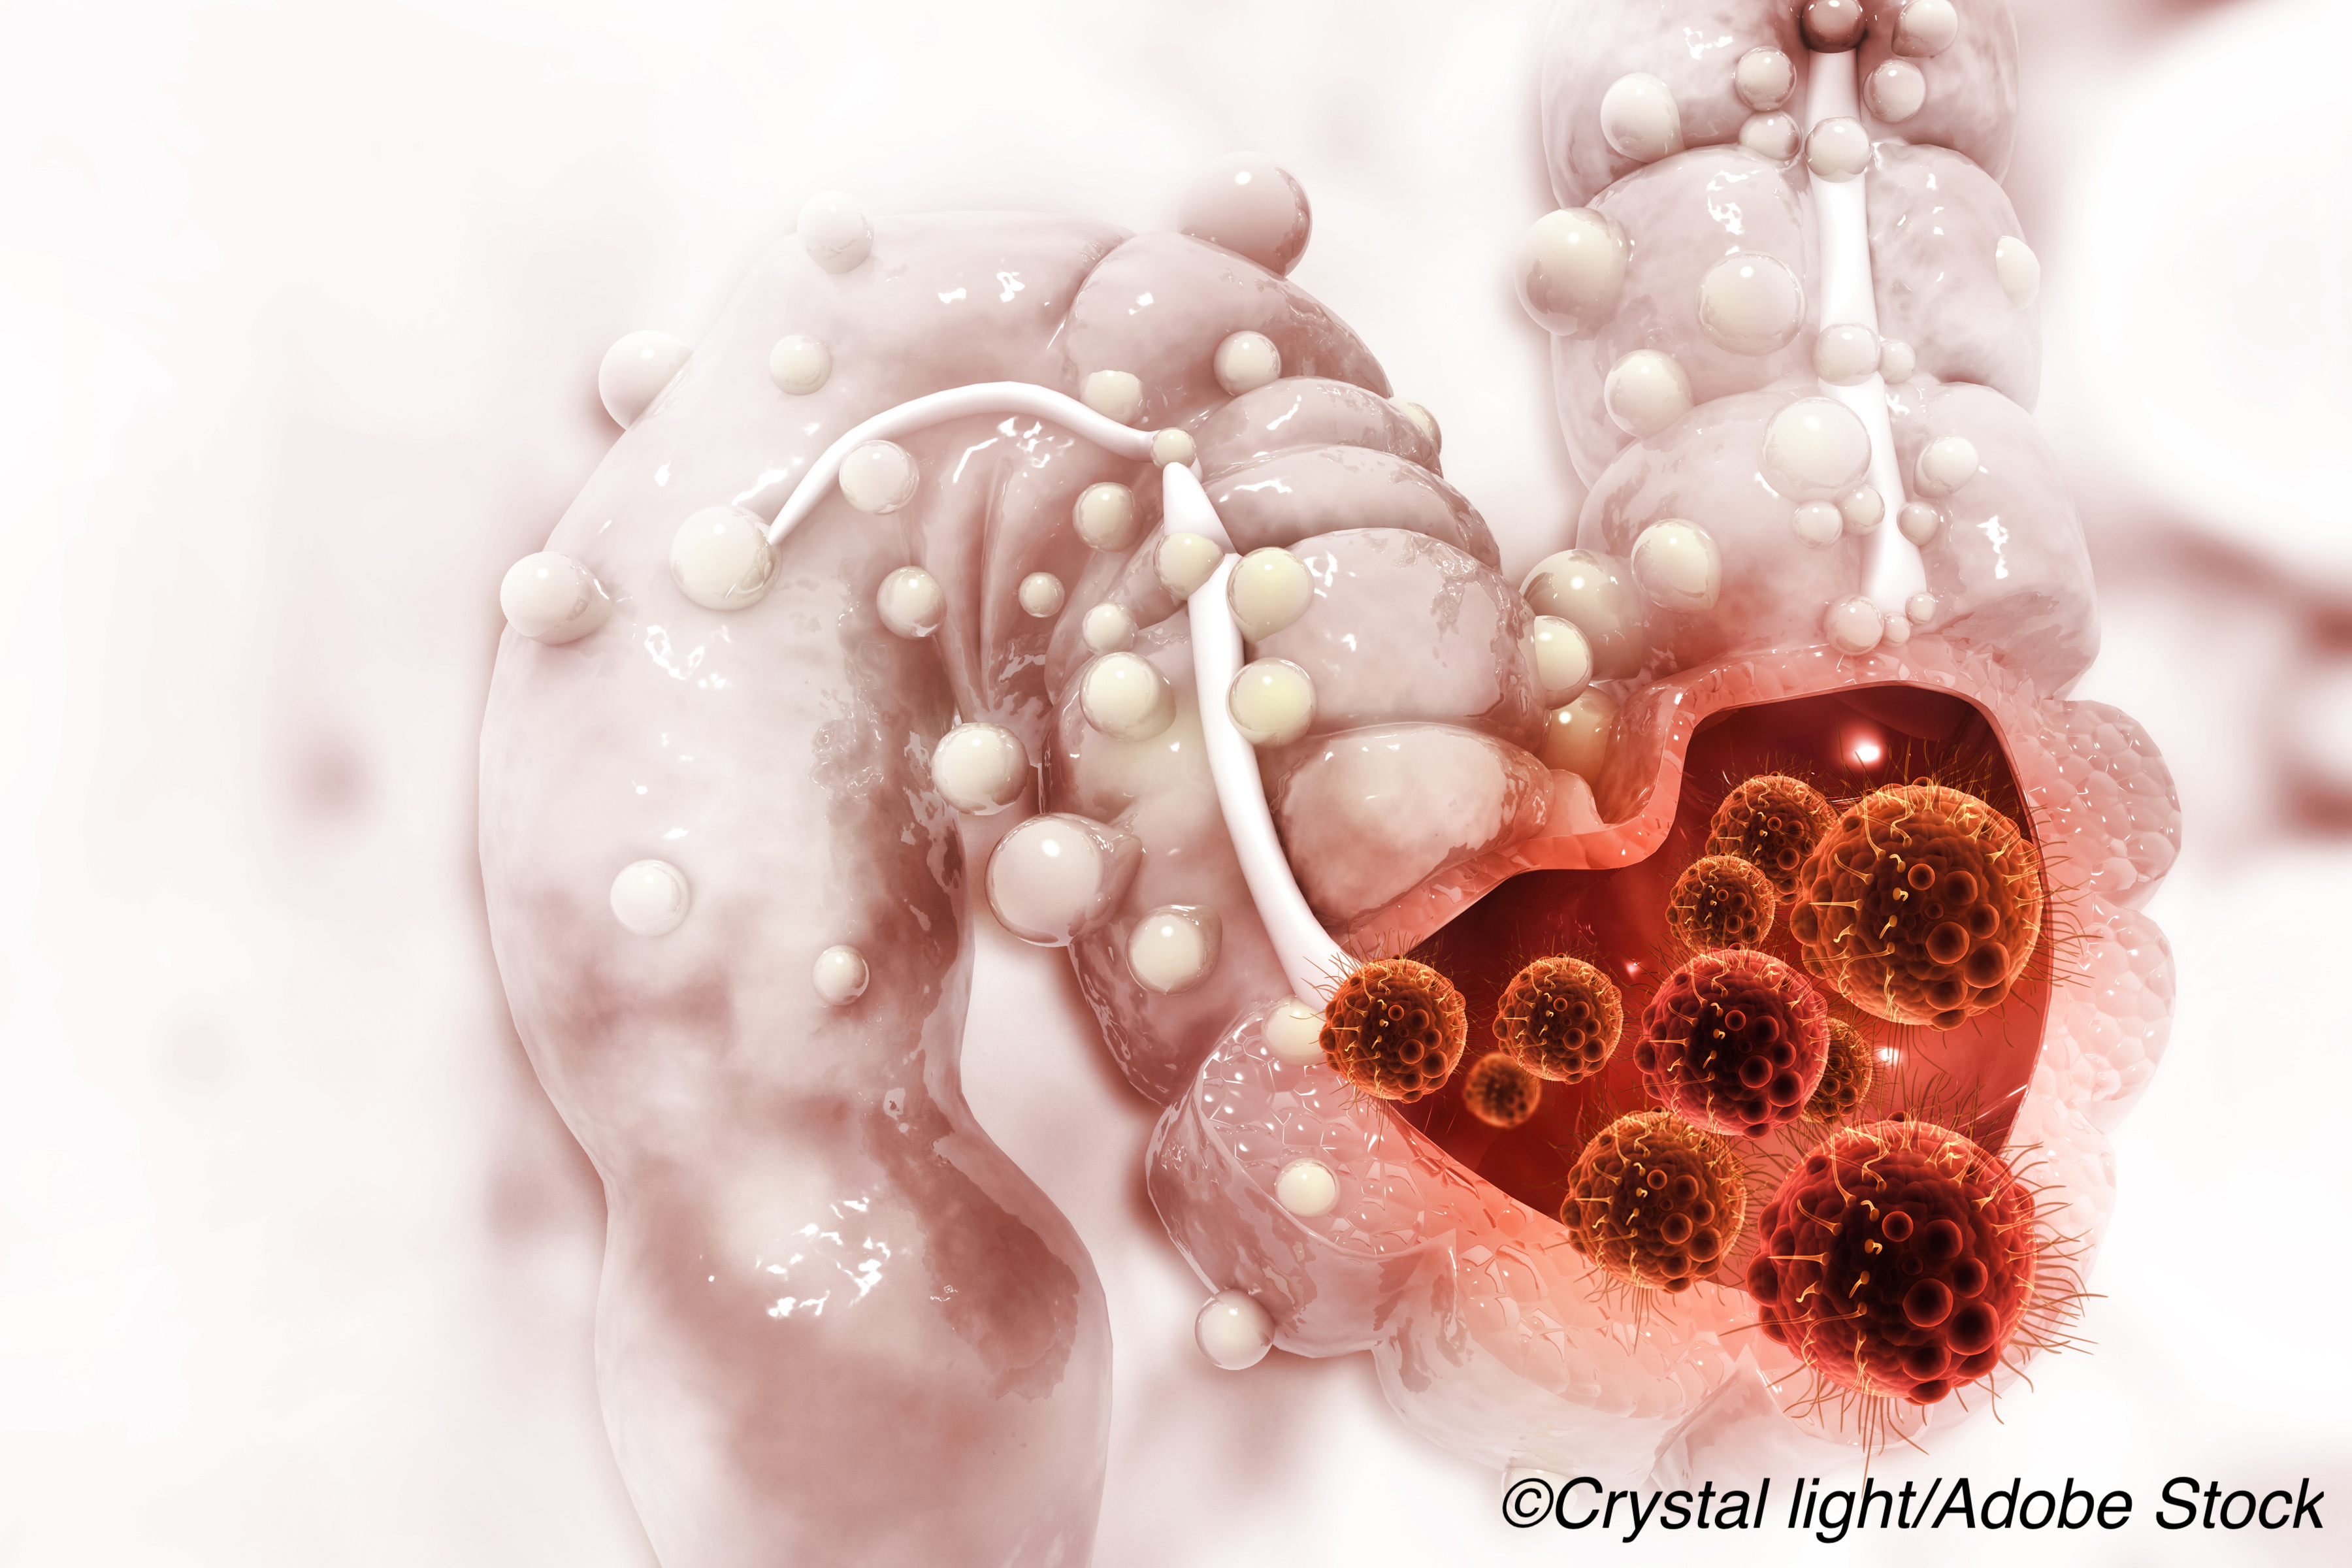 FDA OKs Pembrolizumab for Patients with Metastatic Colorectal Cancer